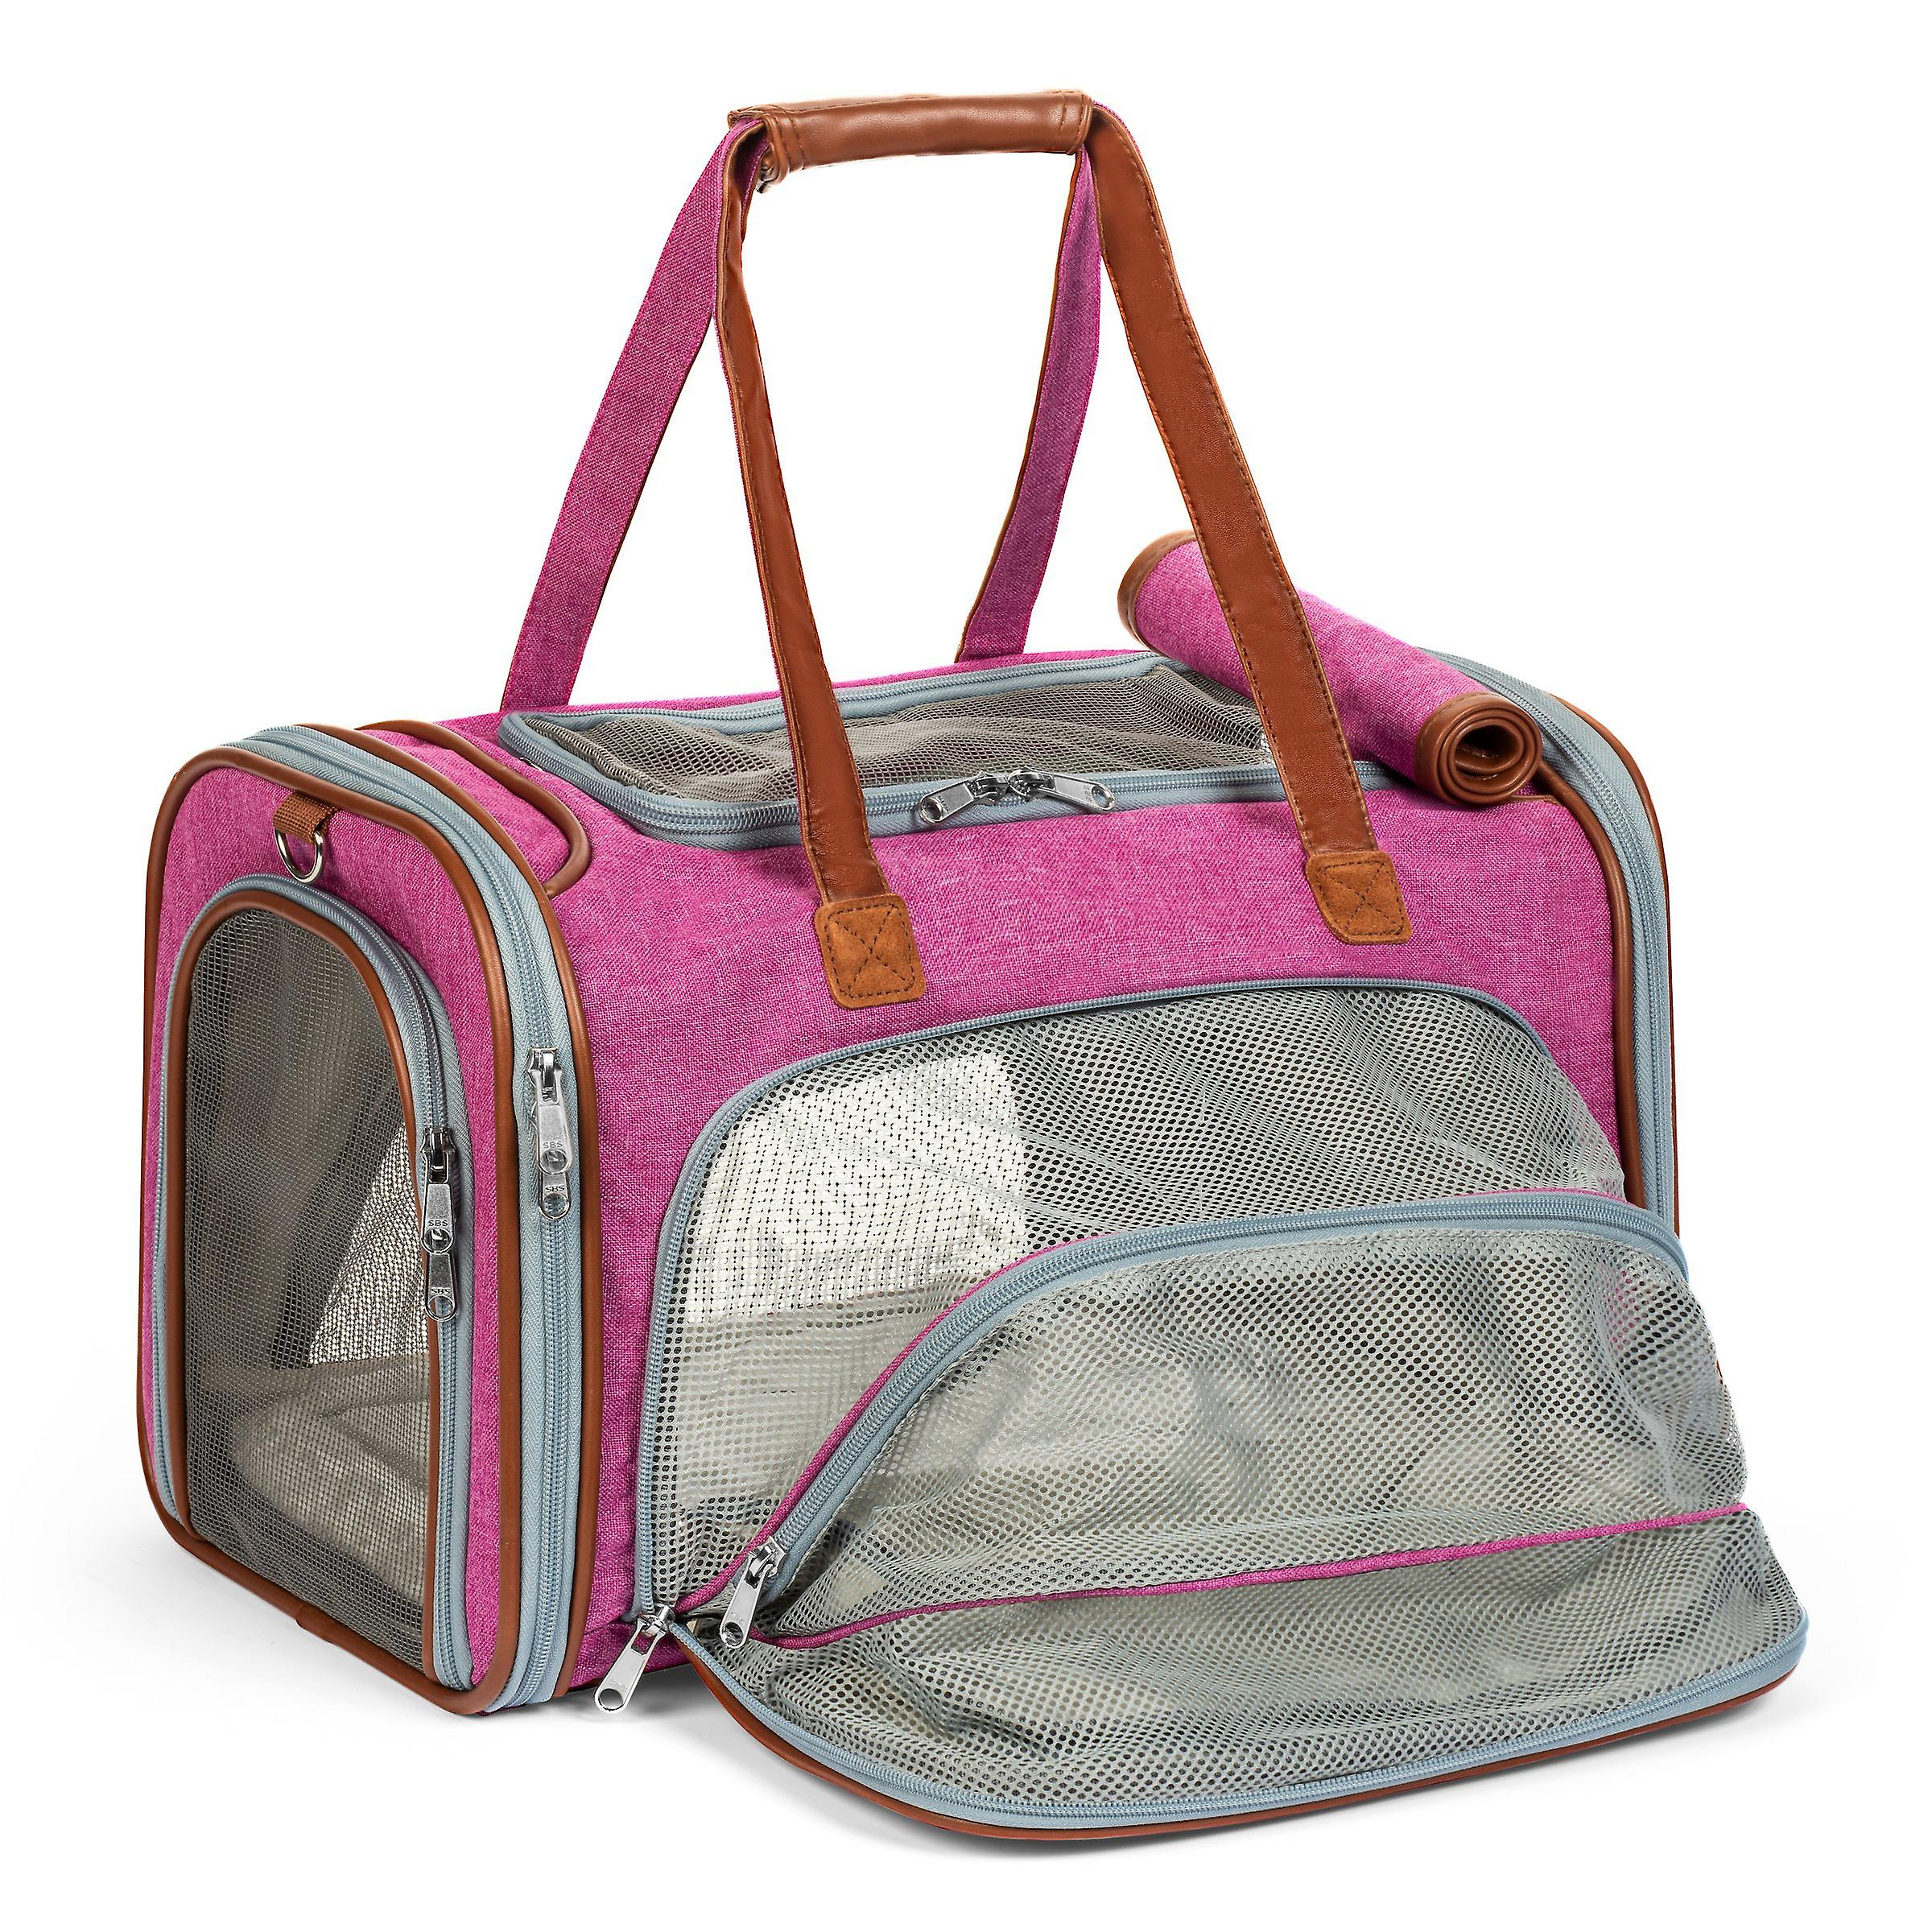 Gold series expandable airline approved tote - low profile, soft sided premium pet carrier